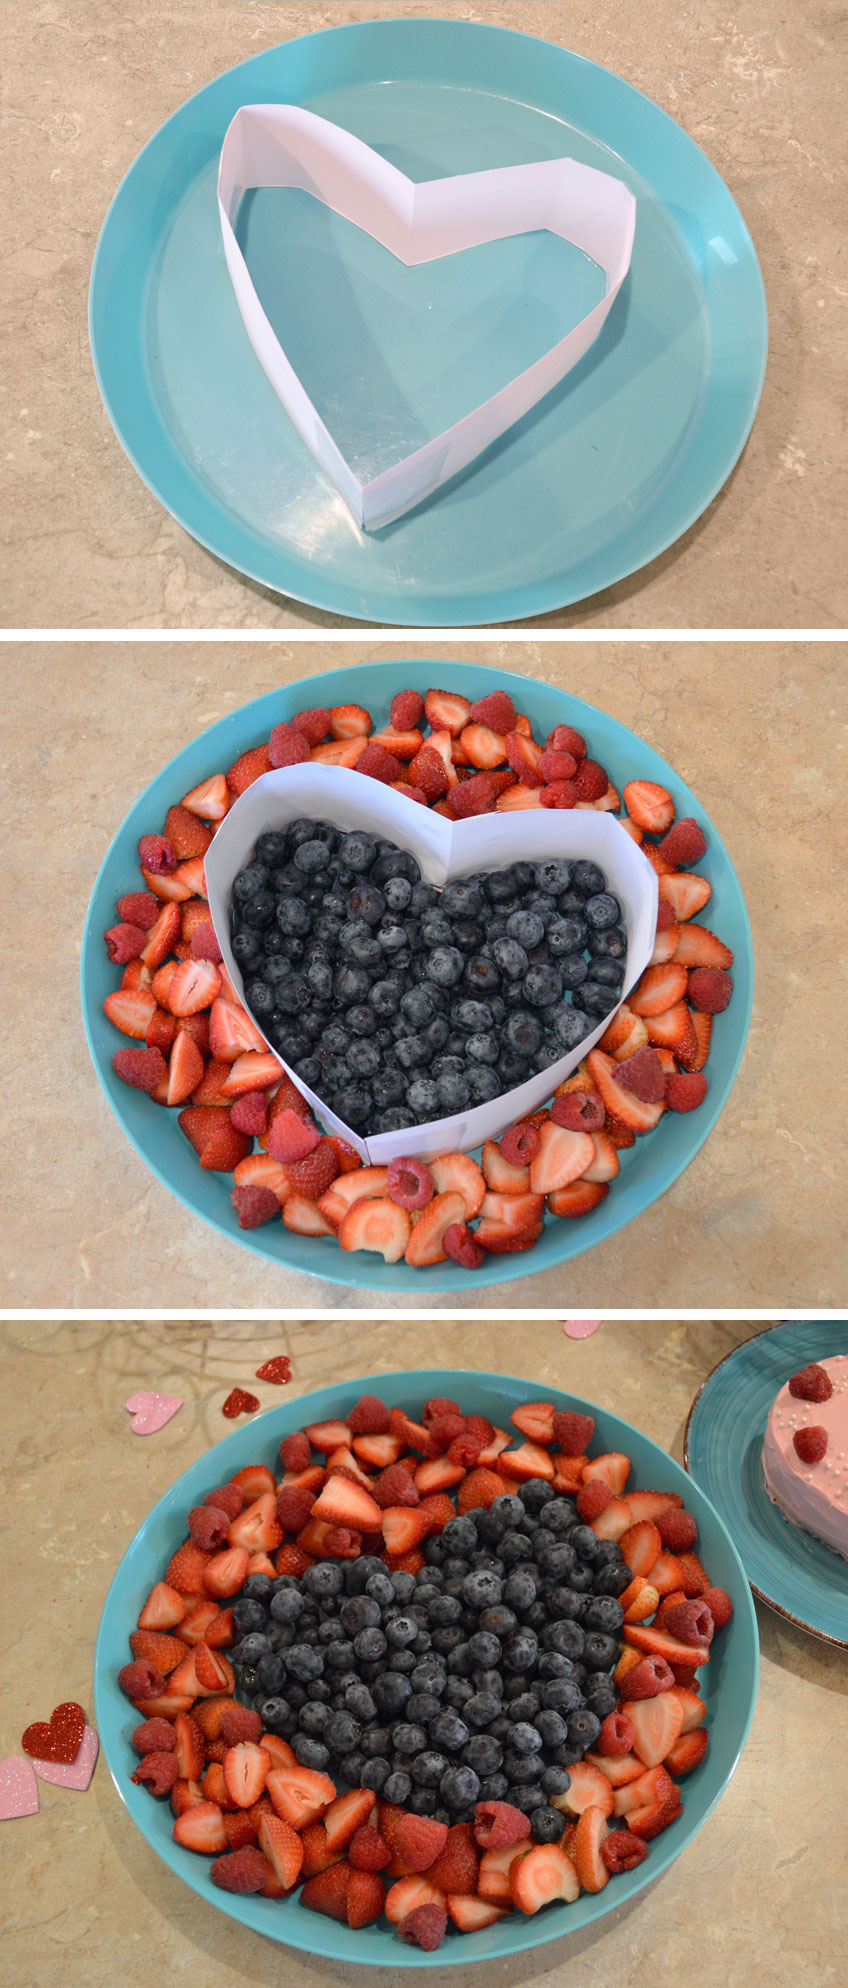 Cute heart fruit plate for kids parties - Mommy Scene